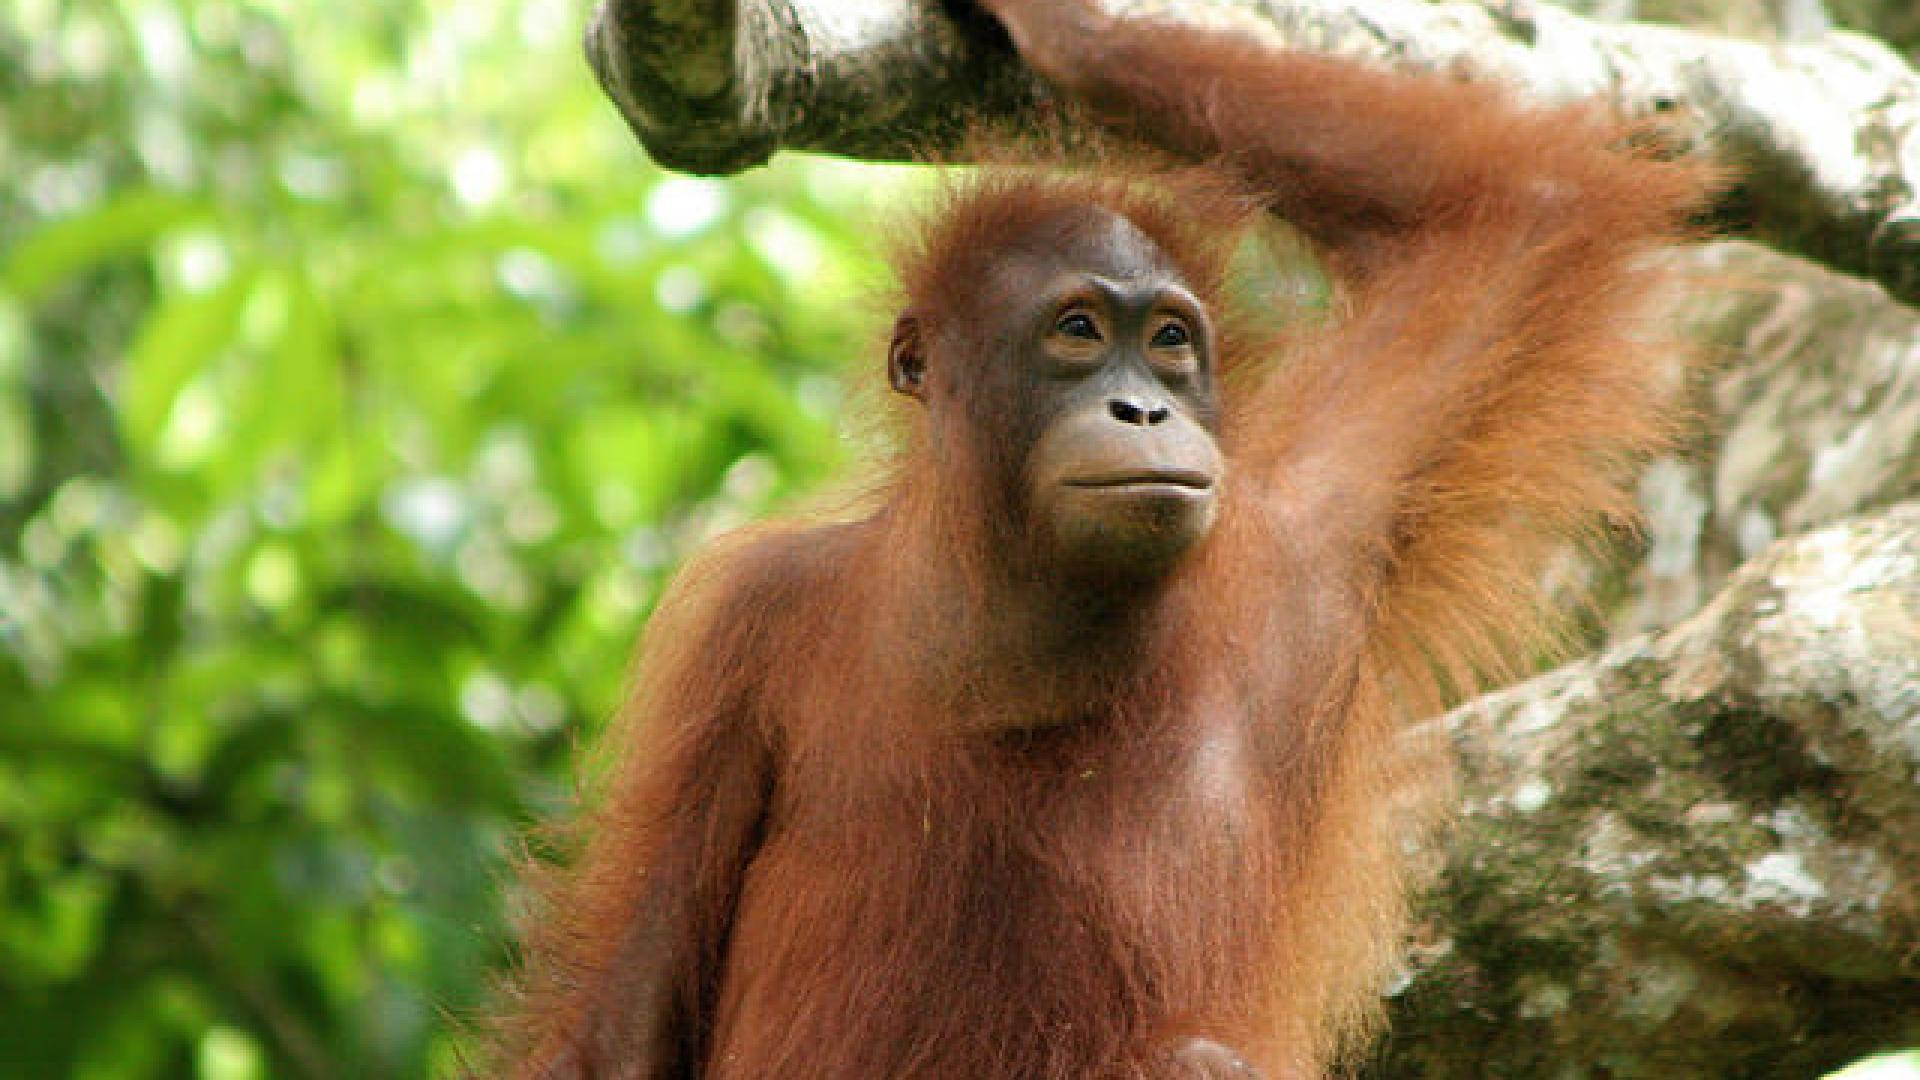 Photo shows an orangutan in the forest